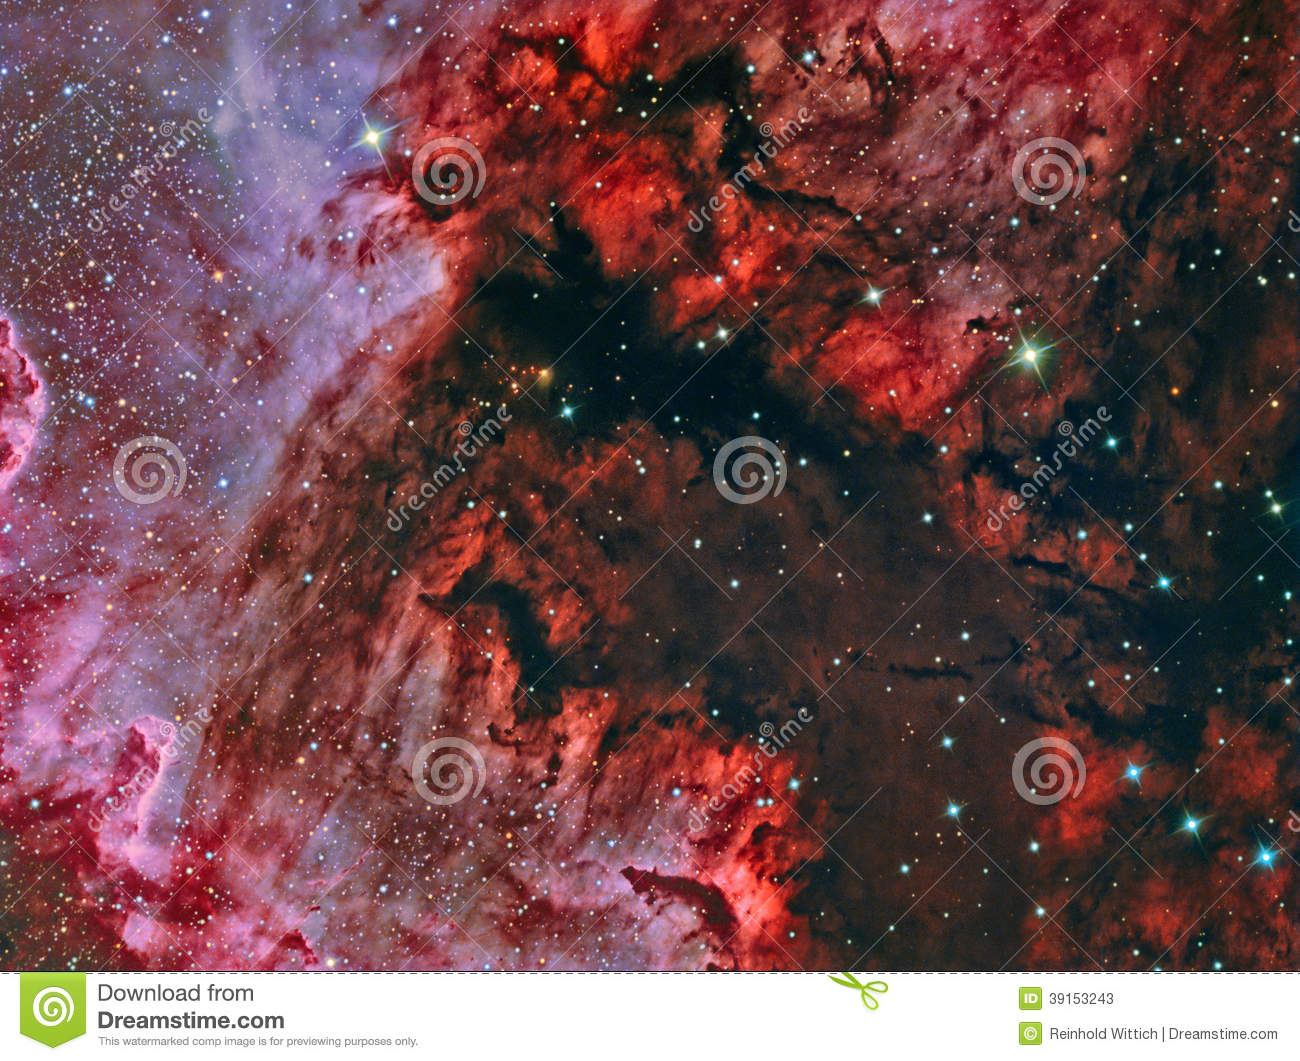 Gulf of Mexico in the NorthAmerica Nebula NGC 7000